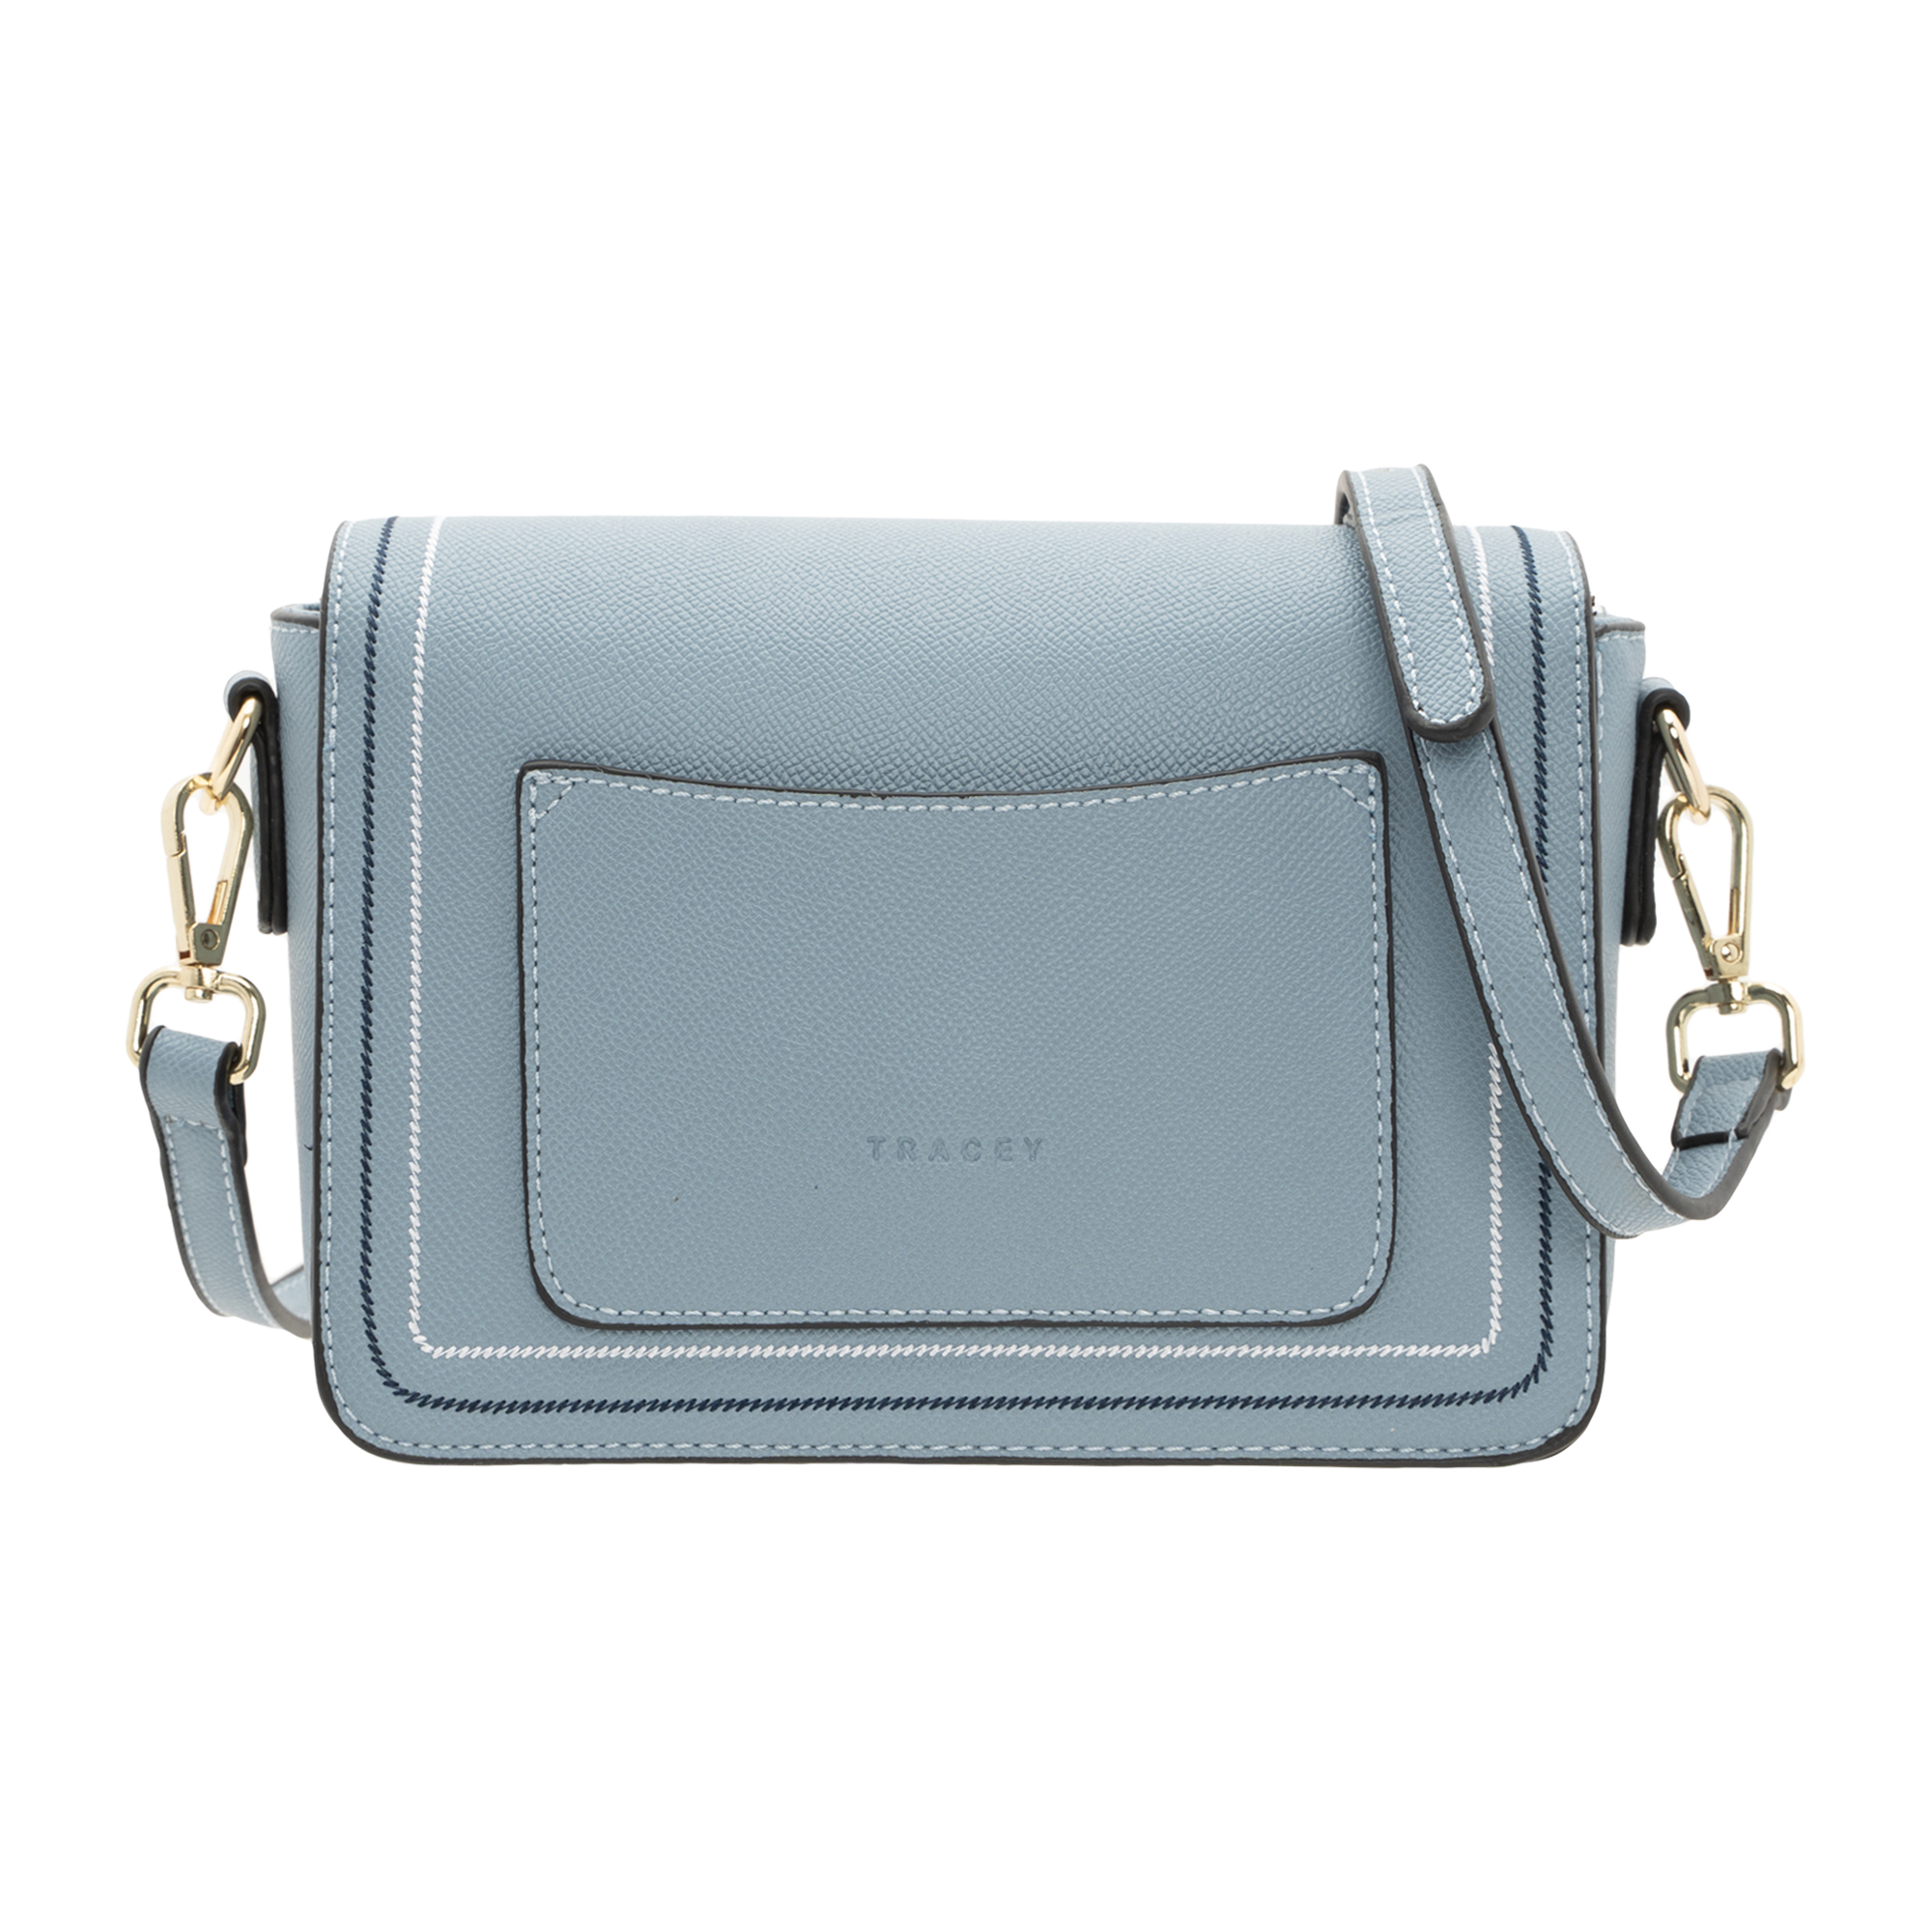 Tracey Front Flap Crossbody Bag